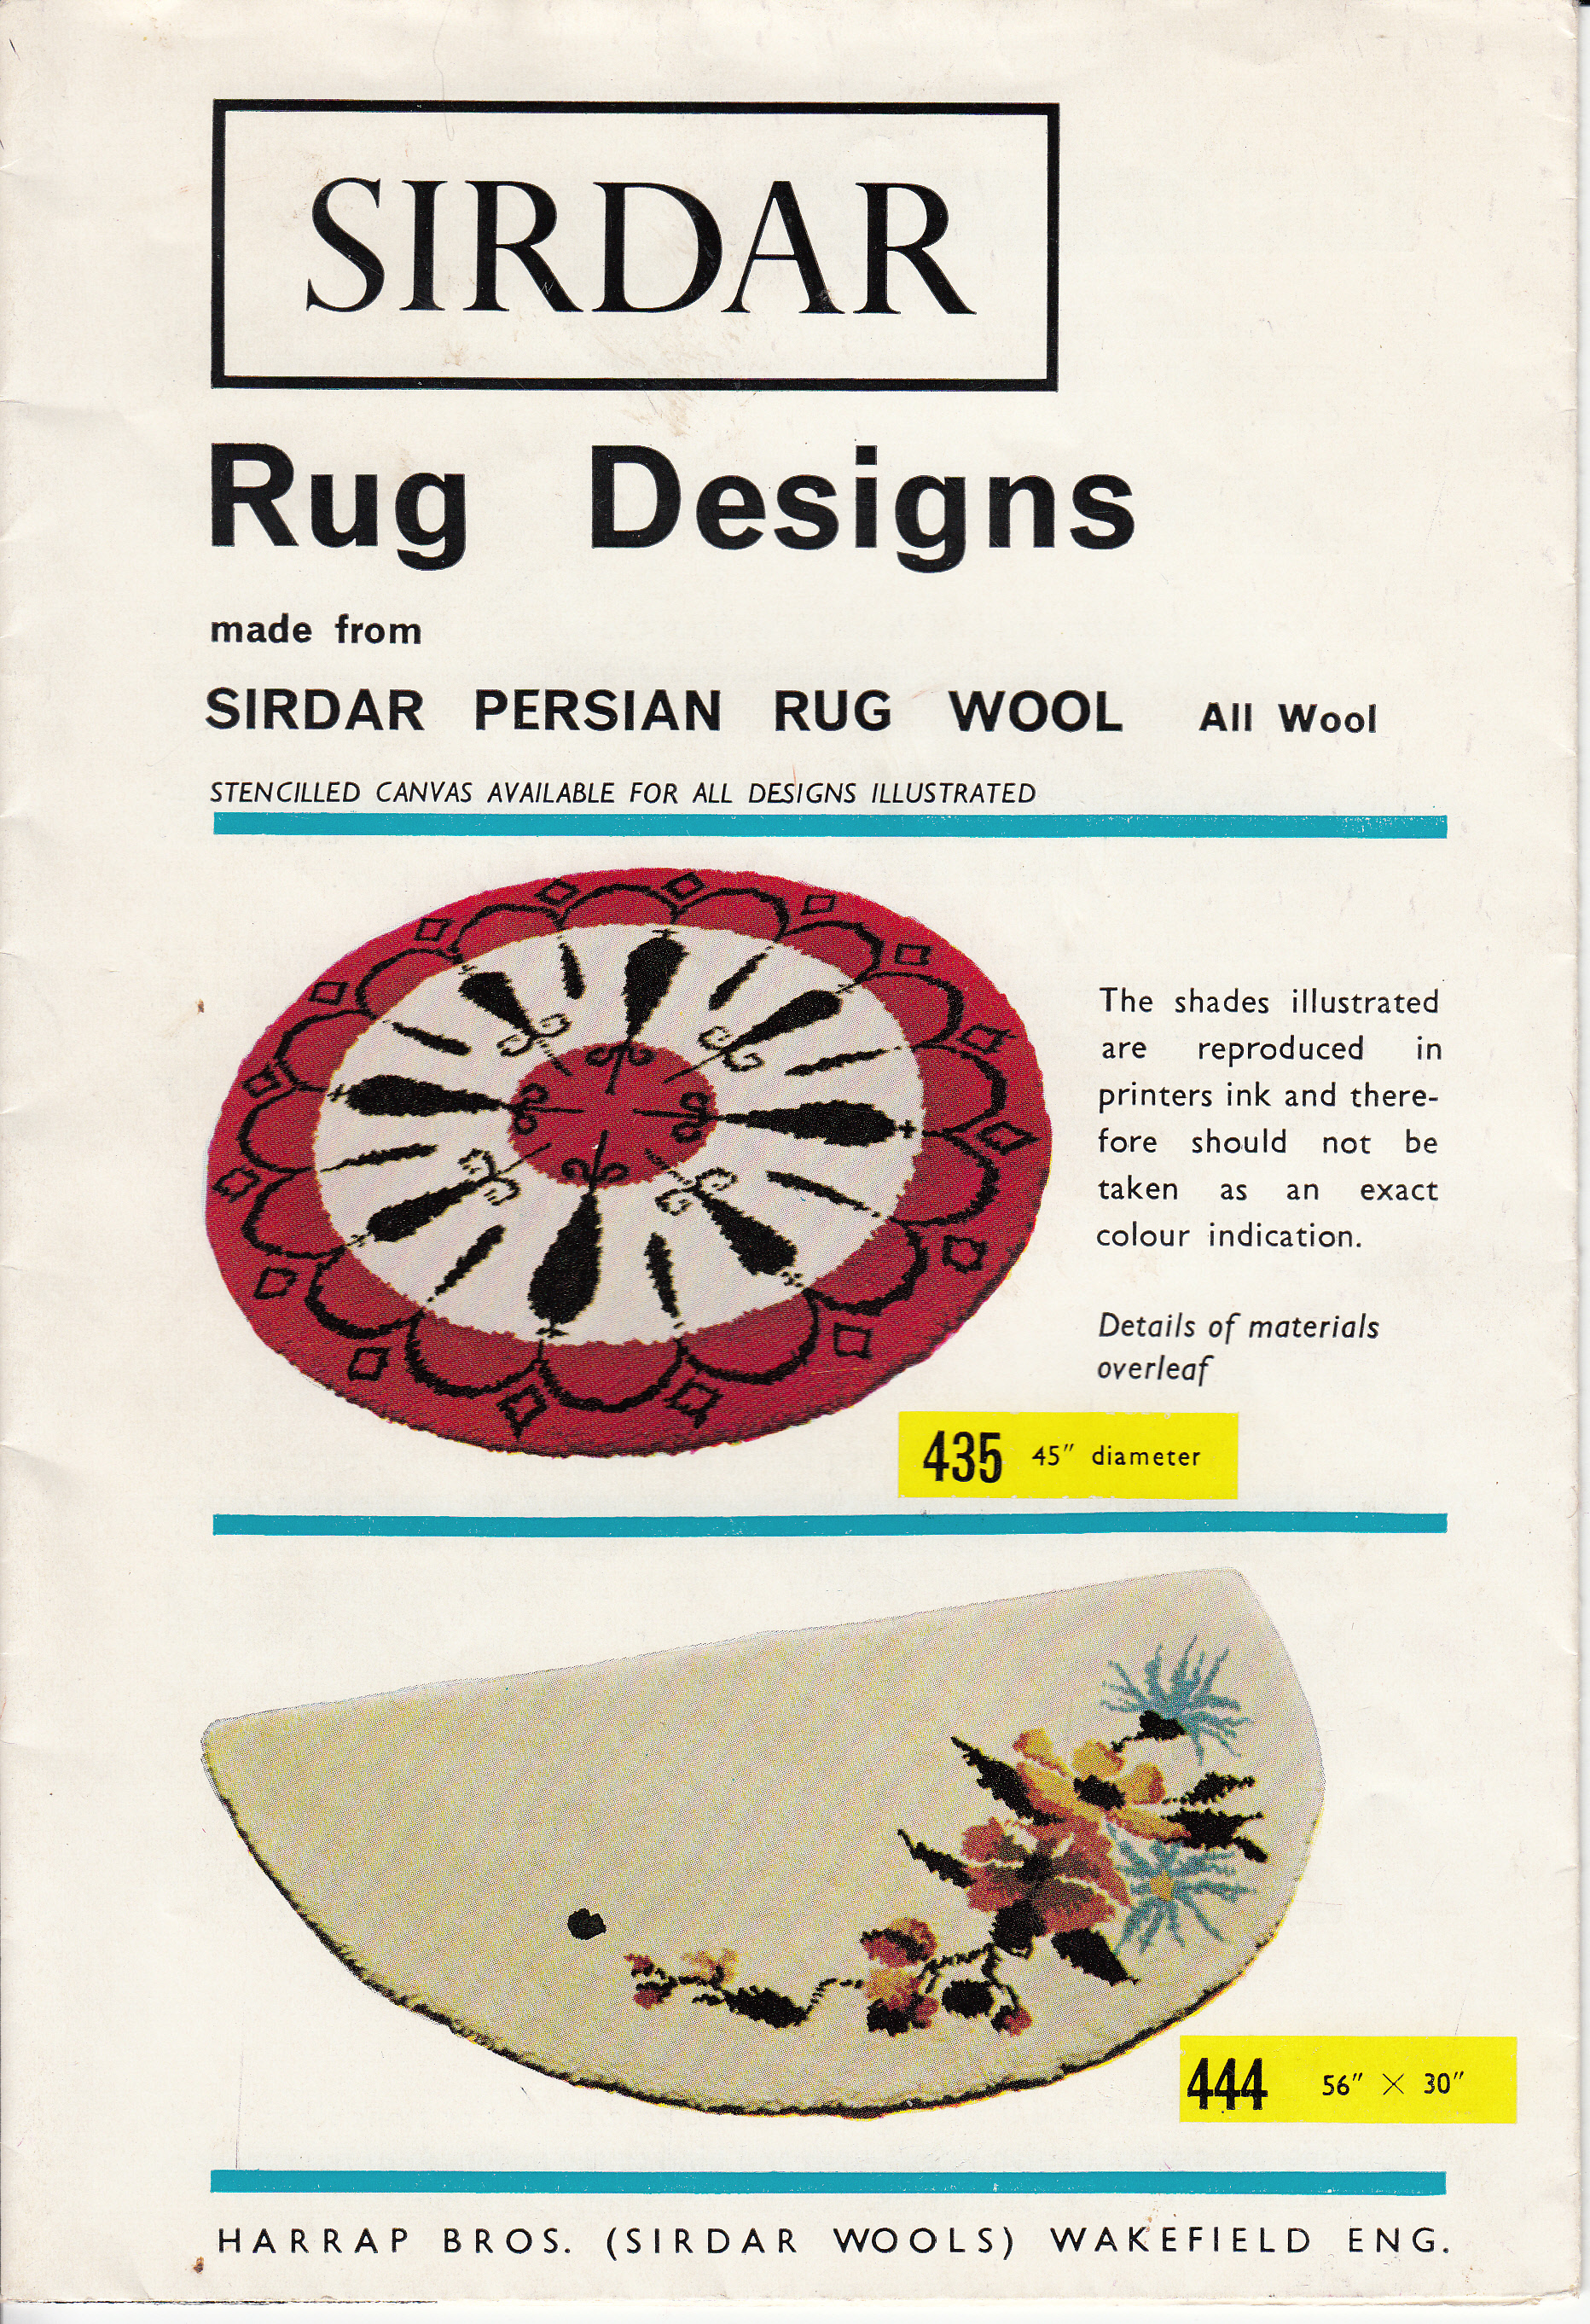 SIRDAR - MAKING A TUFTED RUG / RUG DESIGNS.